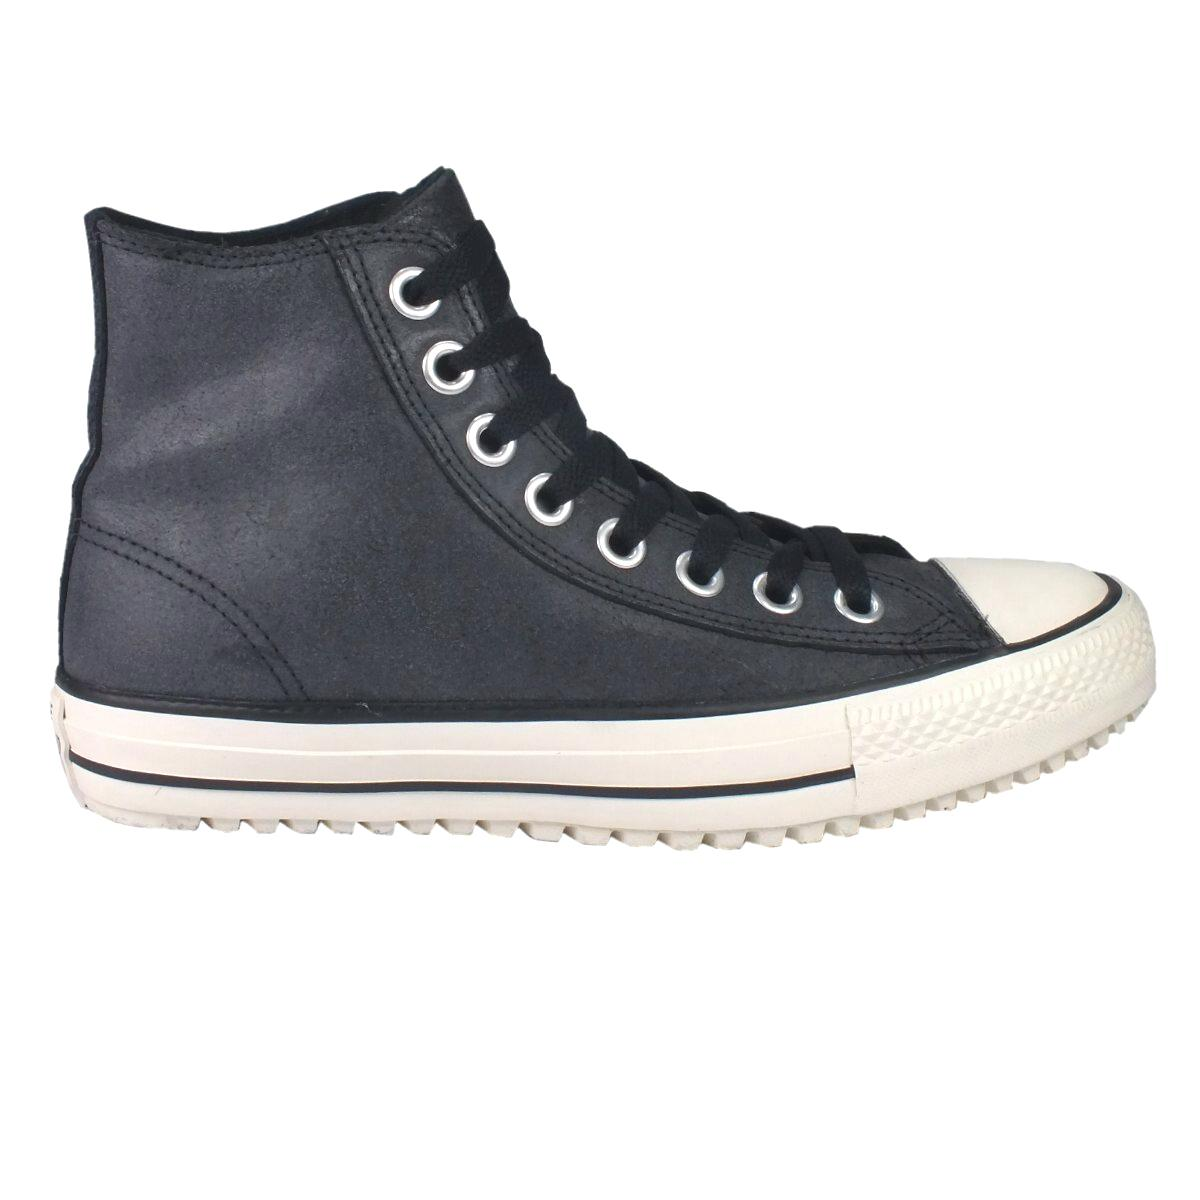 converse chuck taylor all star boot suede mid schuhe. Black Bedroom Furniture Sets. Home Design Ideas